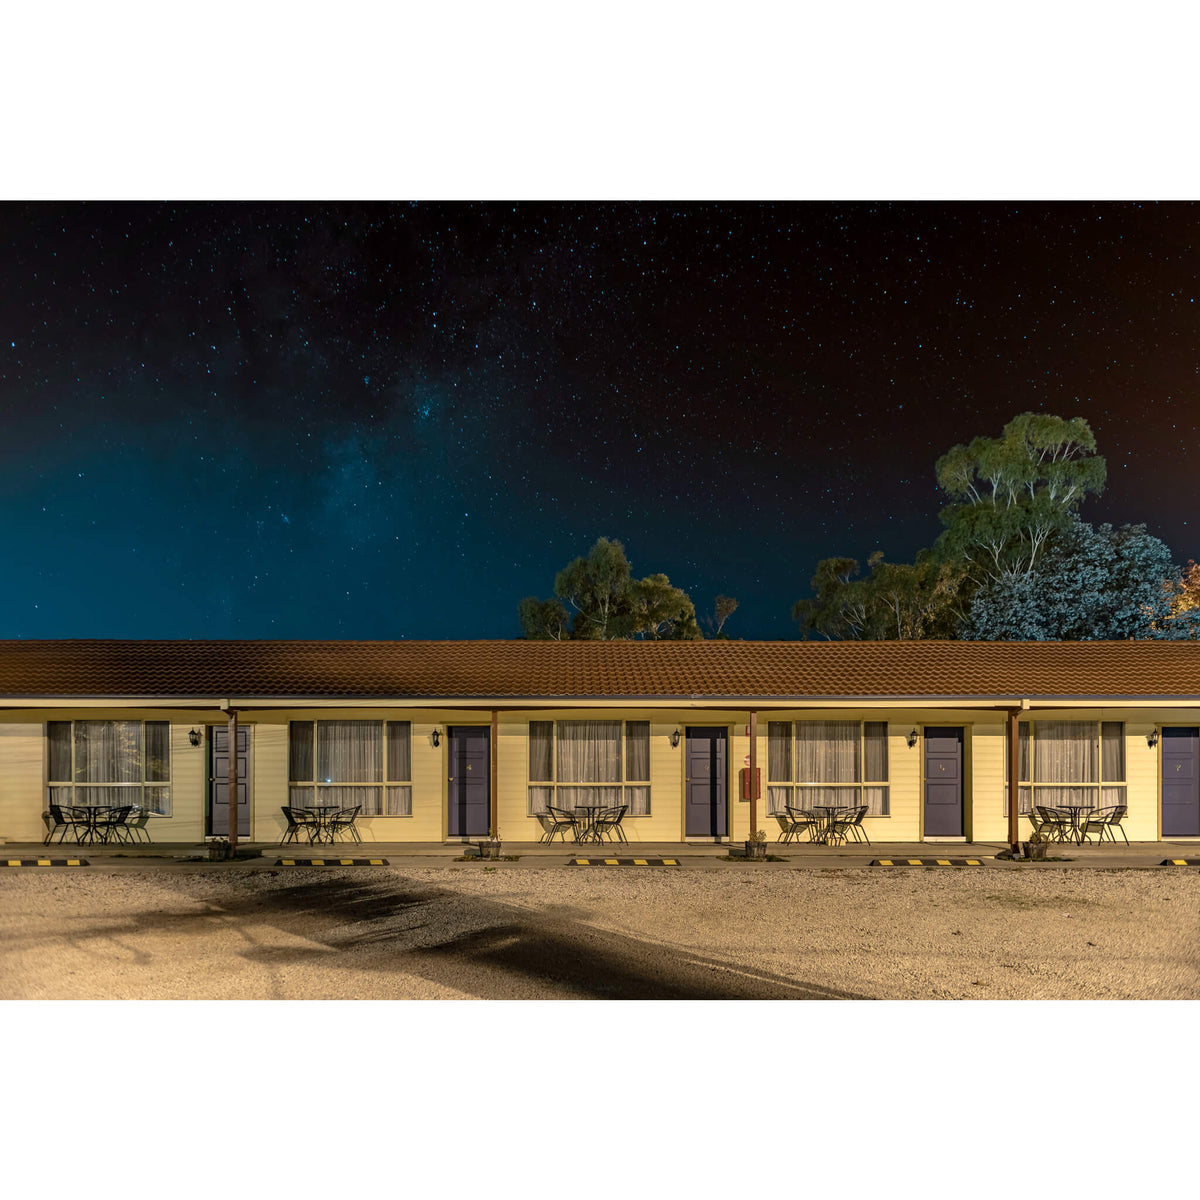 Parkside Motor Inn, Lithgow | Hotel Motel 101 Fine Art Print - Lost Collective Shop